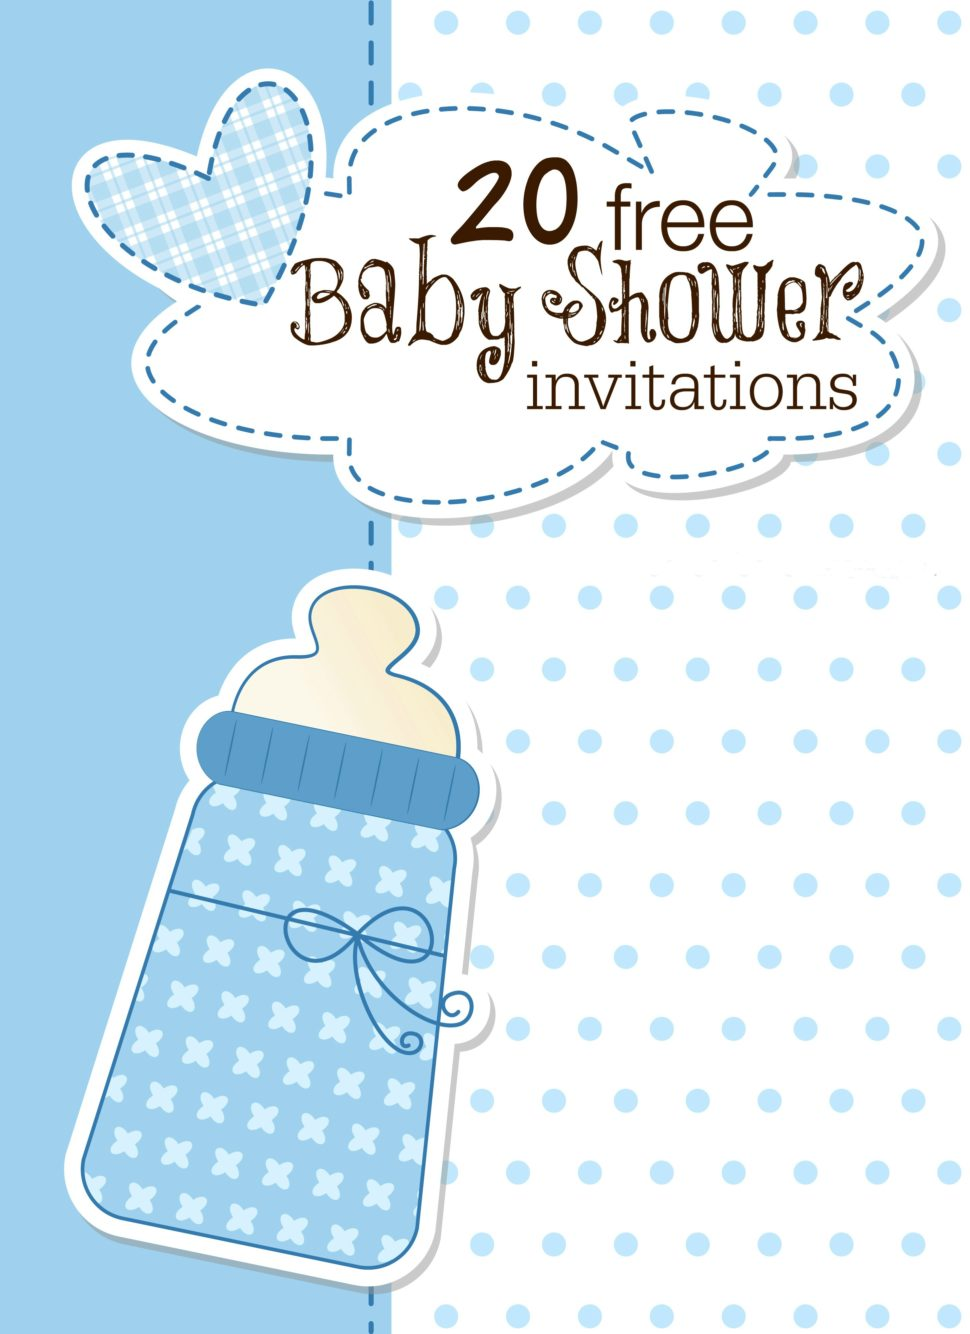 Medium Size of Baby Shower:baby Boy Shower Ideas Free Printable Baby Shower Games Free Baby Shower Ideas Unique Baby Shower Decorations Nautical Baby Shower Invitations For Boys Baby Girl Themes For Bedroom Baby Shower Ideas Baby Shower Decorations Themes For Baby Girl Nursery